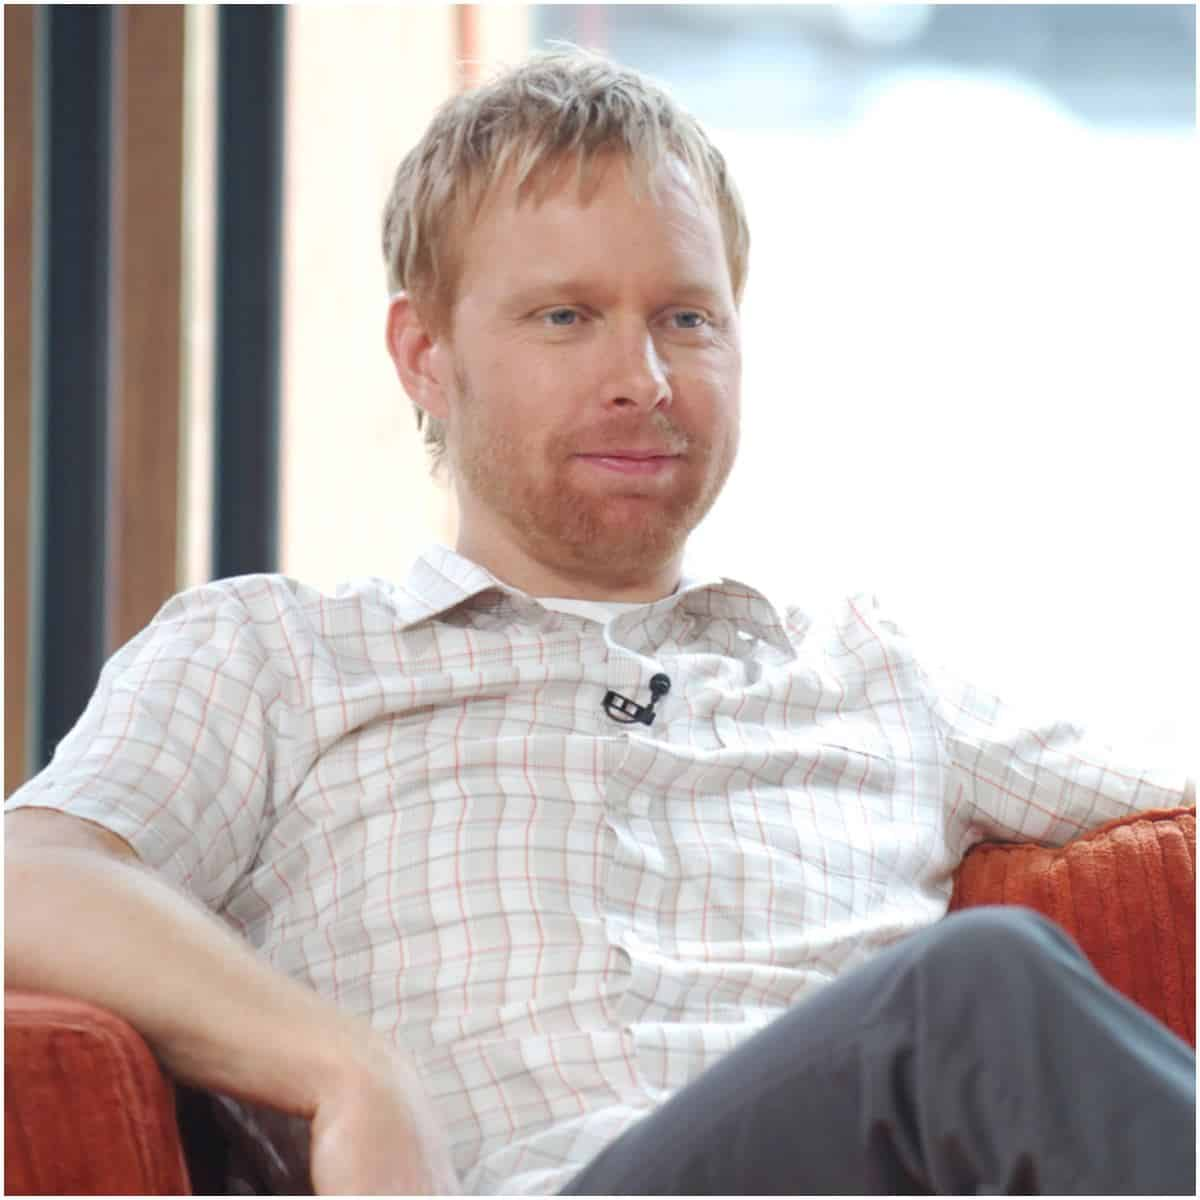 what is the net worth of Nate Mendel